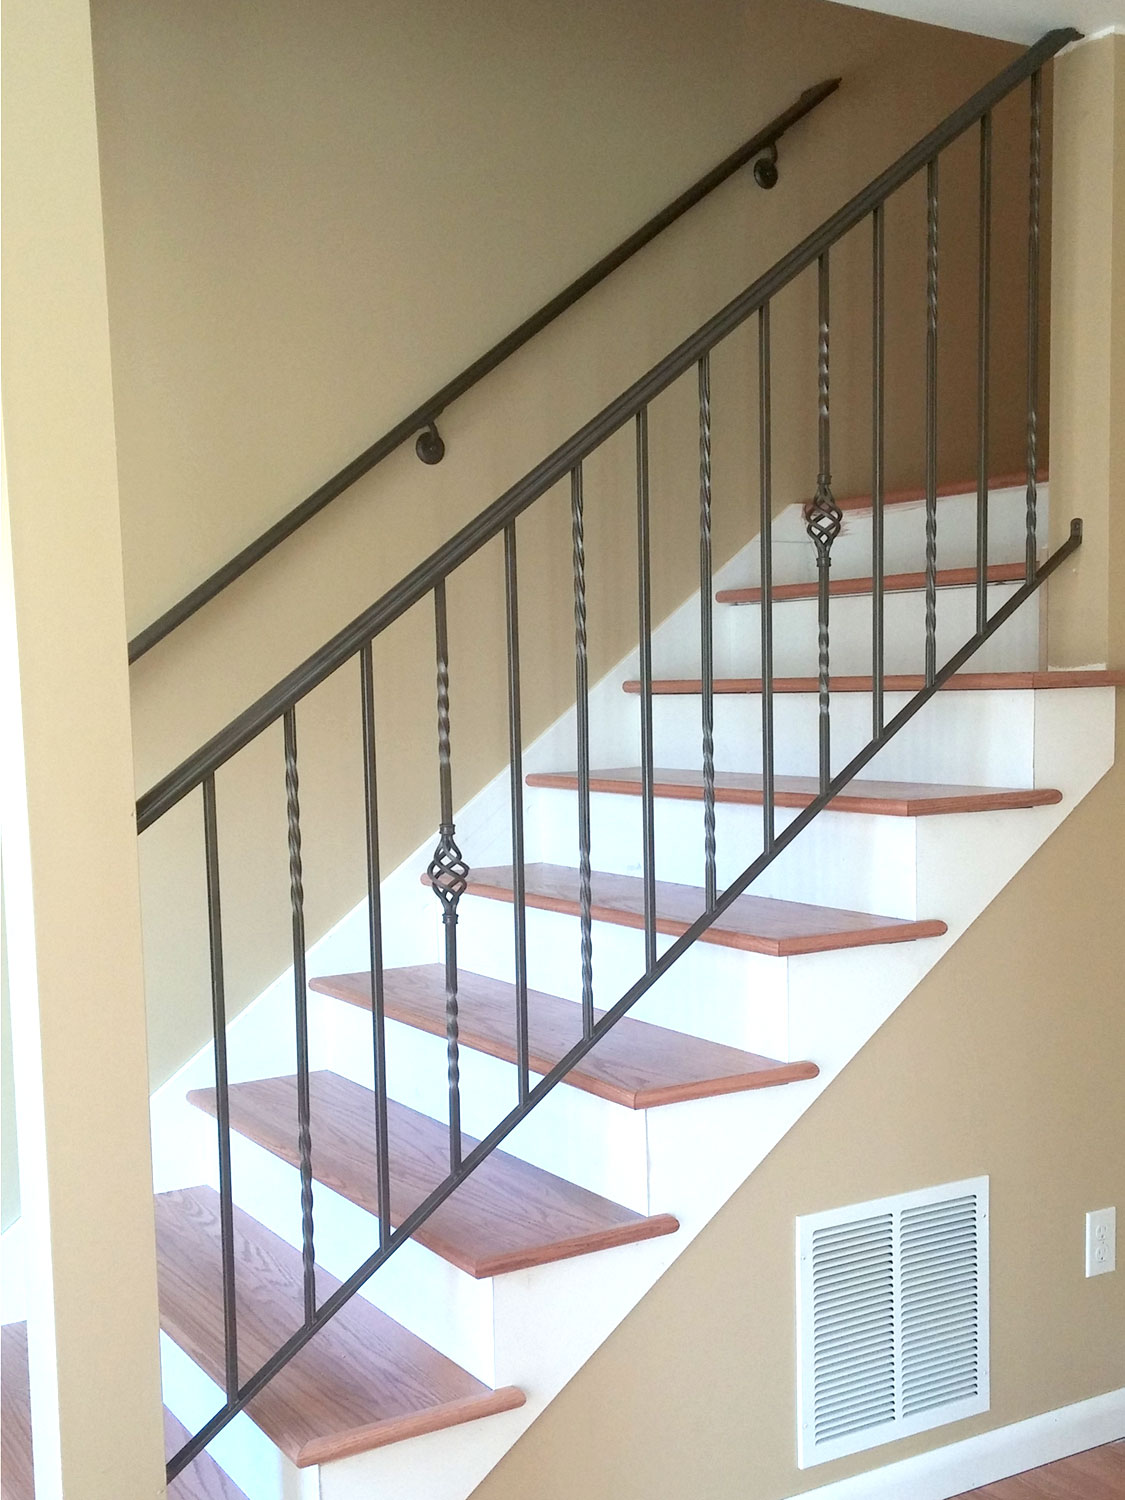 Traditional Handrail and Guardrail for Interior Stairs - Seattle, WA